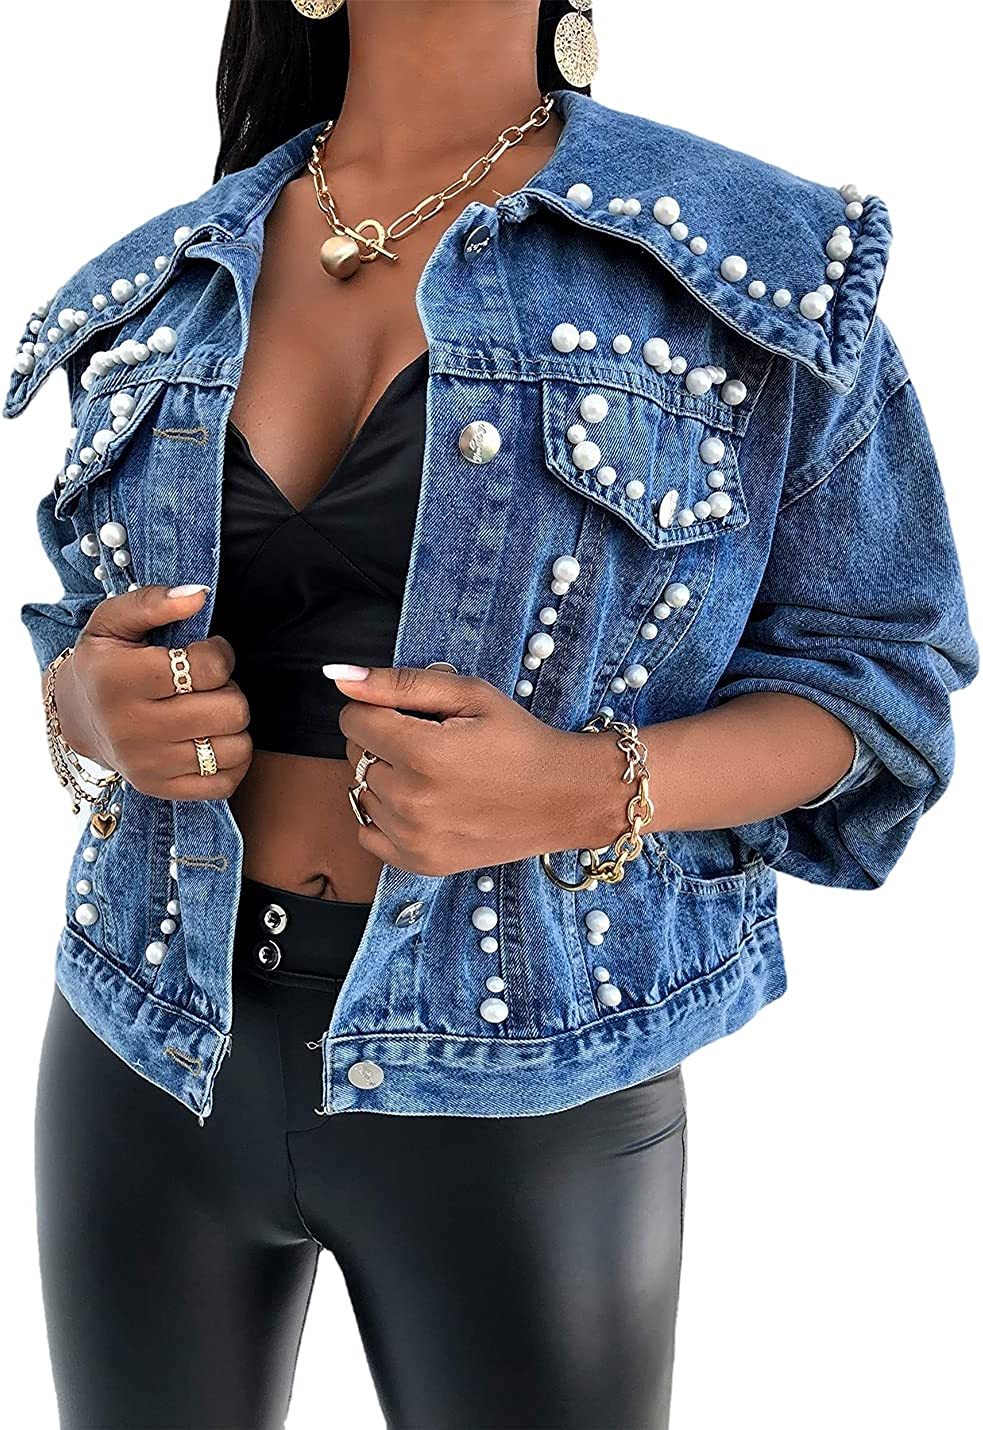 Xishiloft Women's Cropped Denim Jackets Shawl Lapel Long Sleeved Button Embroidered Rivet Pearl Casual Short Coats